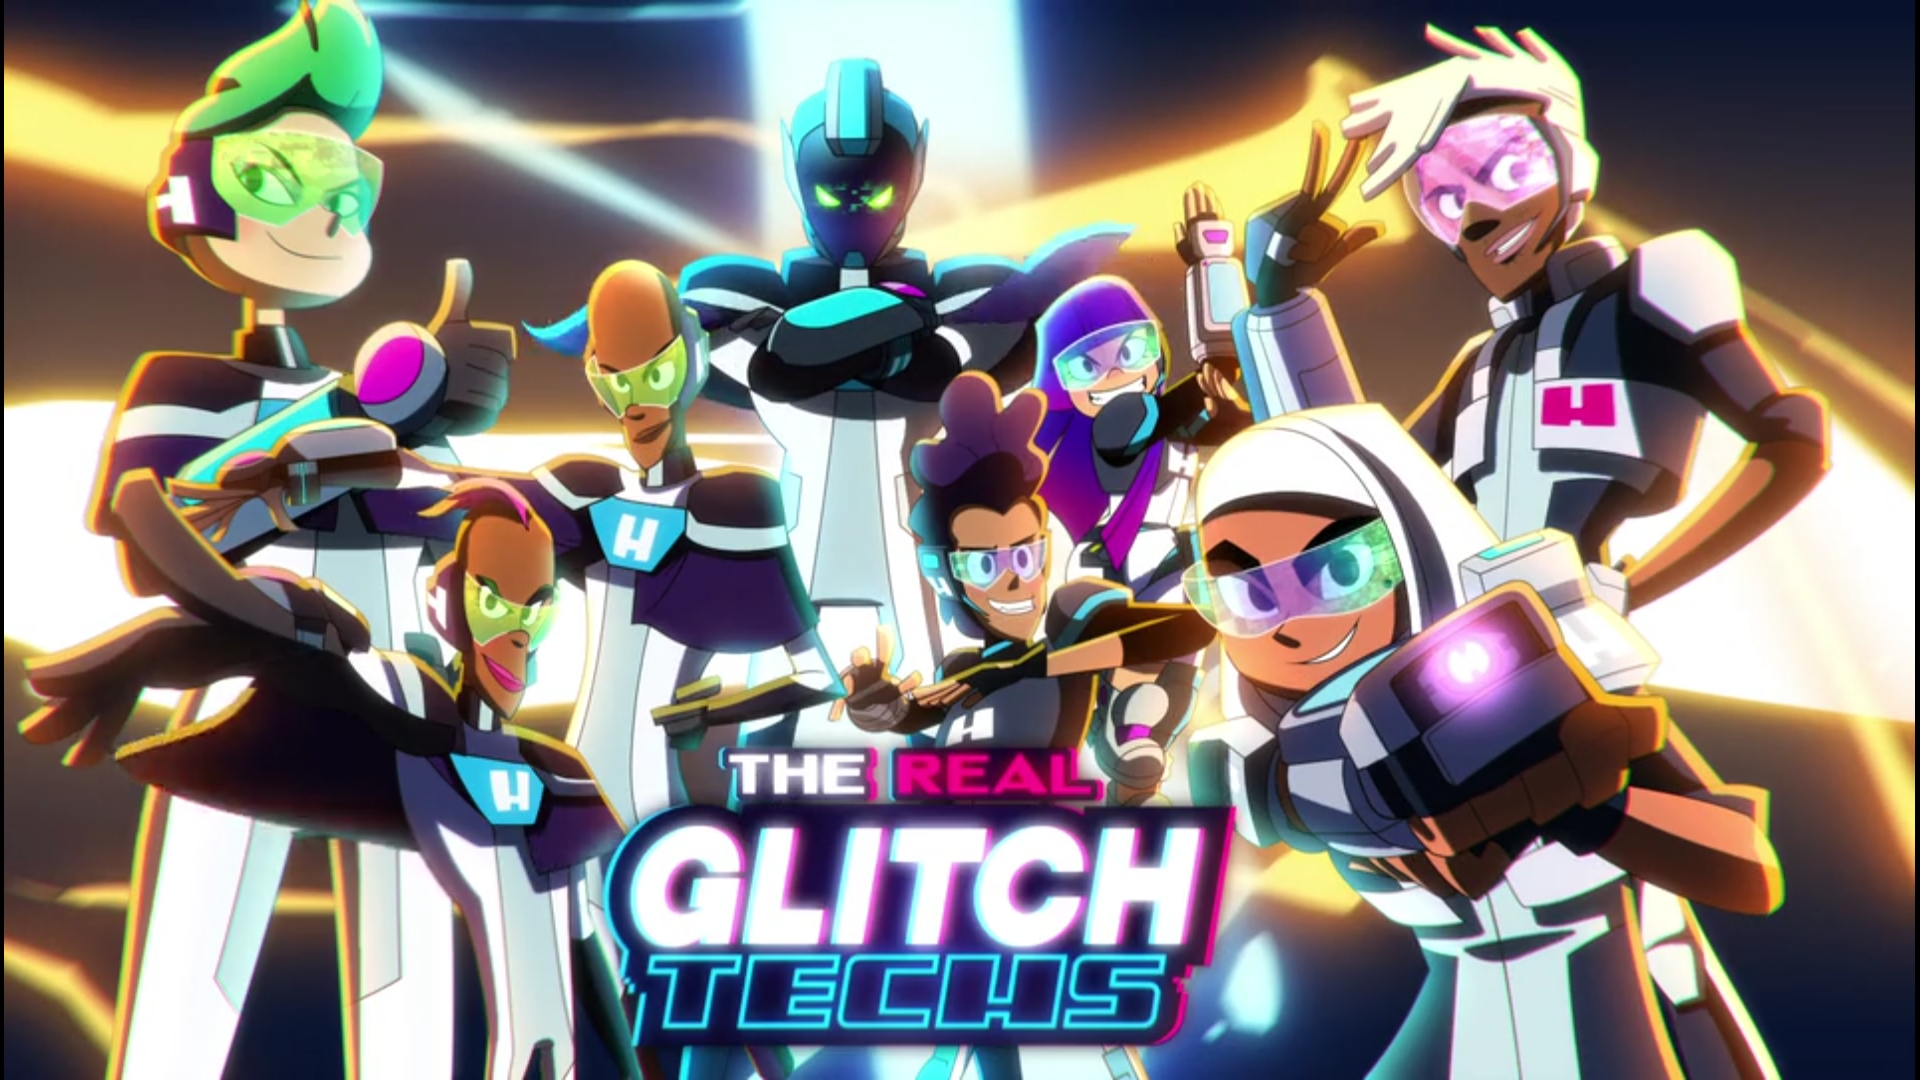 The Real Glitch Techs